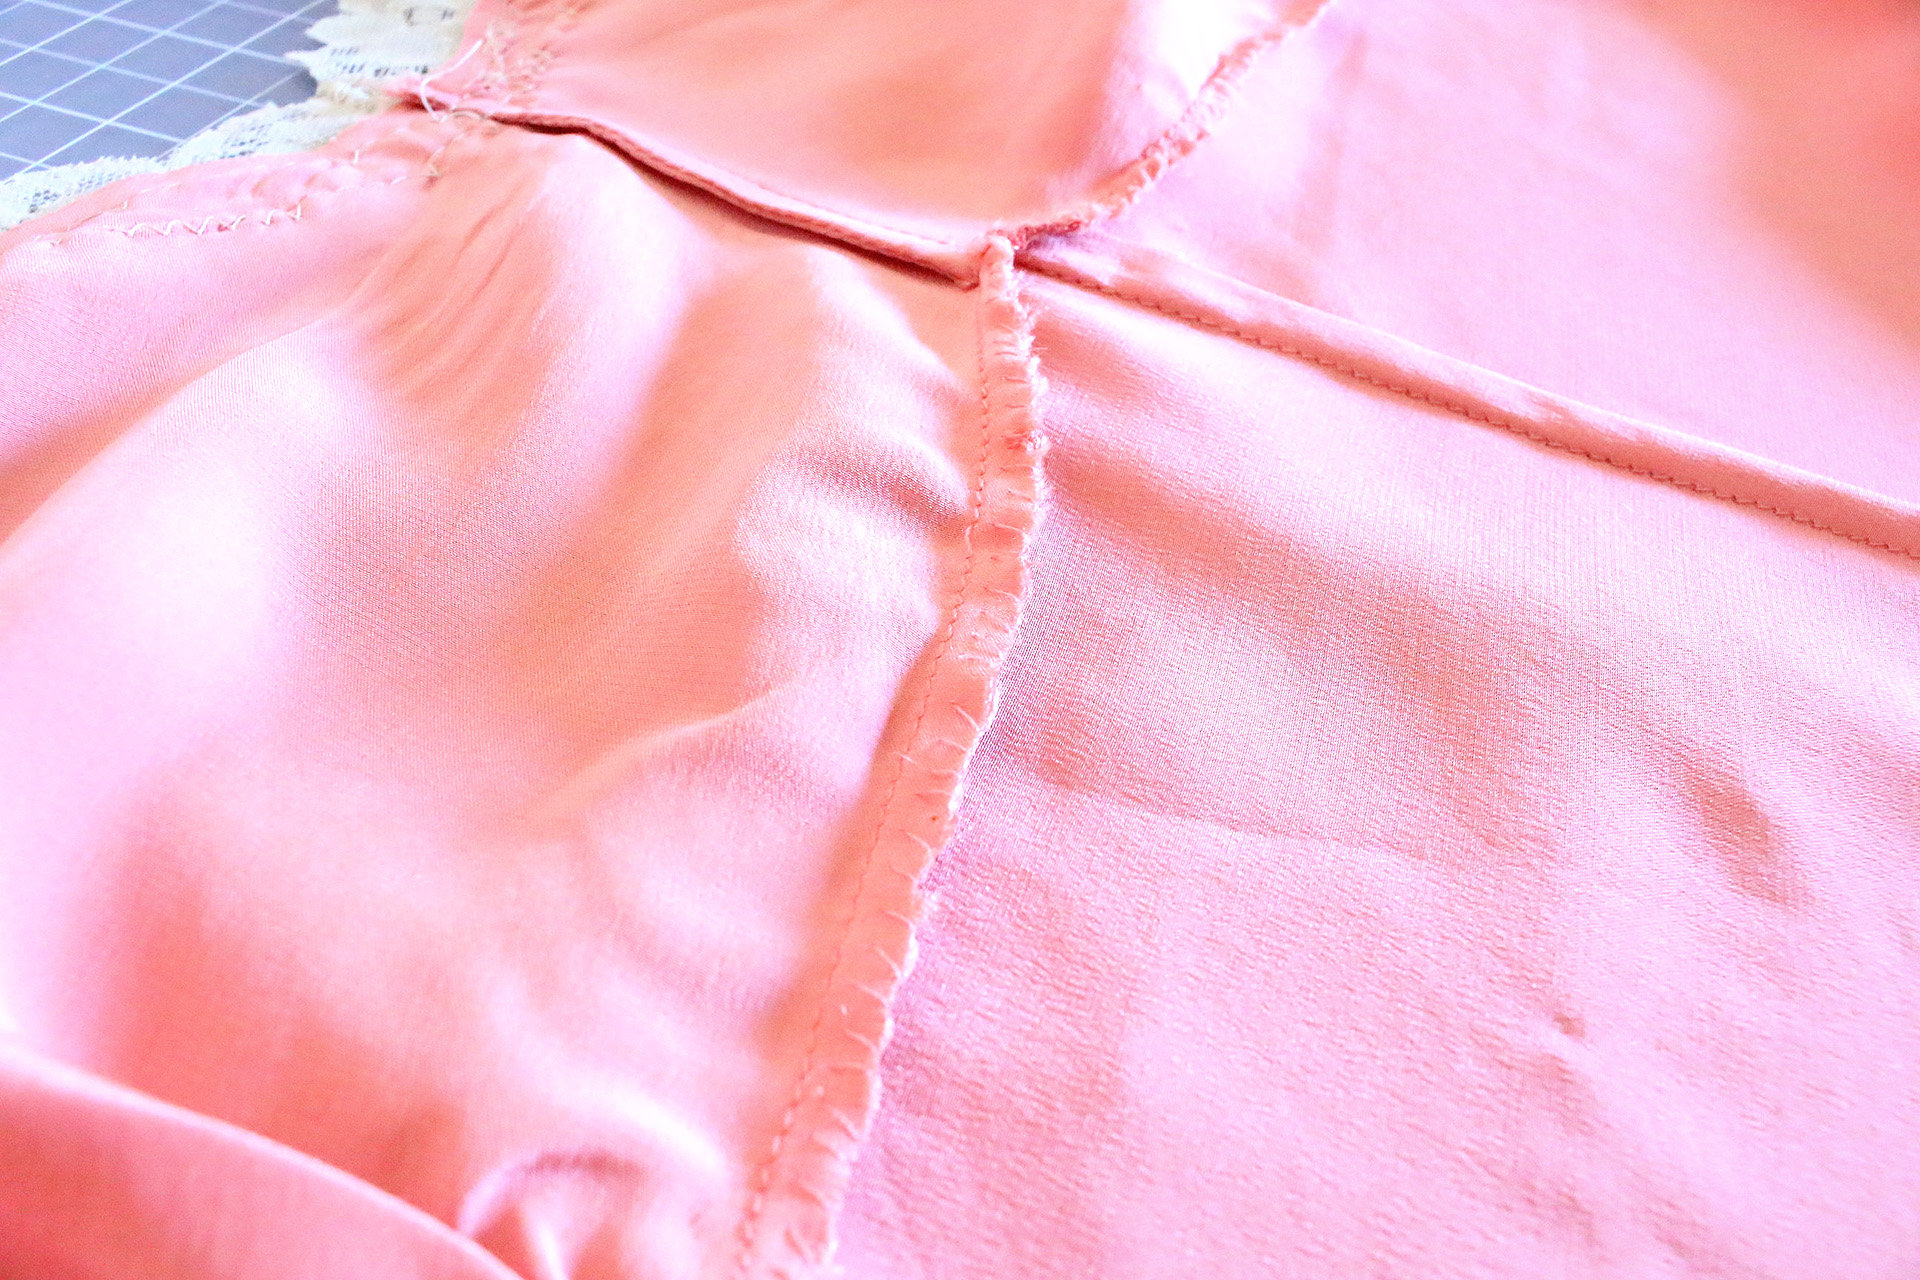 Vintage Inspired Slip Interior detail, hand sewing and French seam | @vintageontap